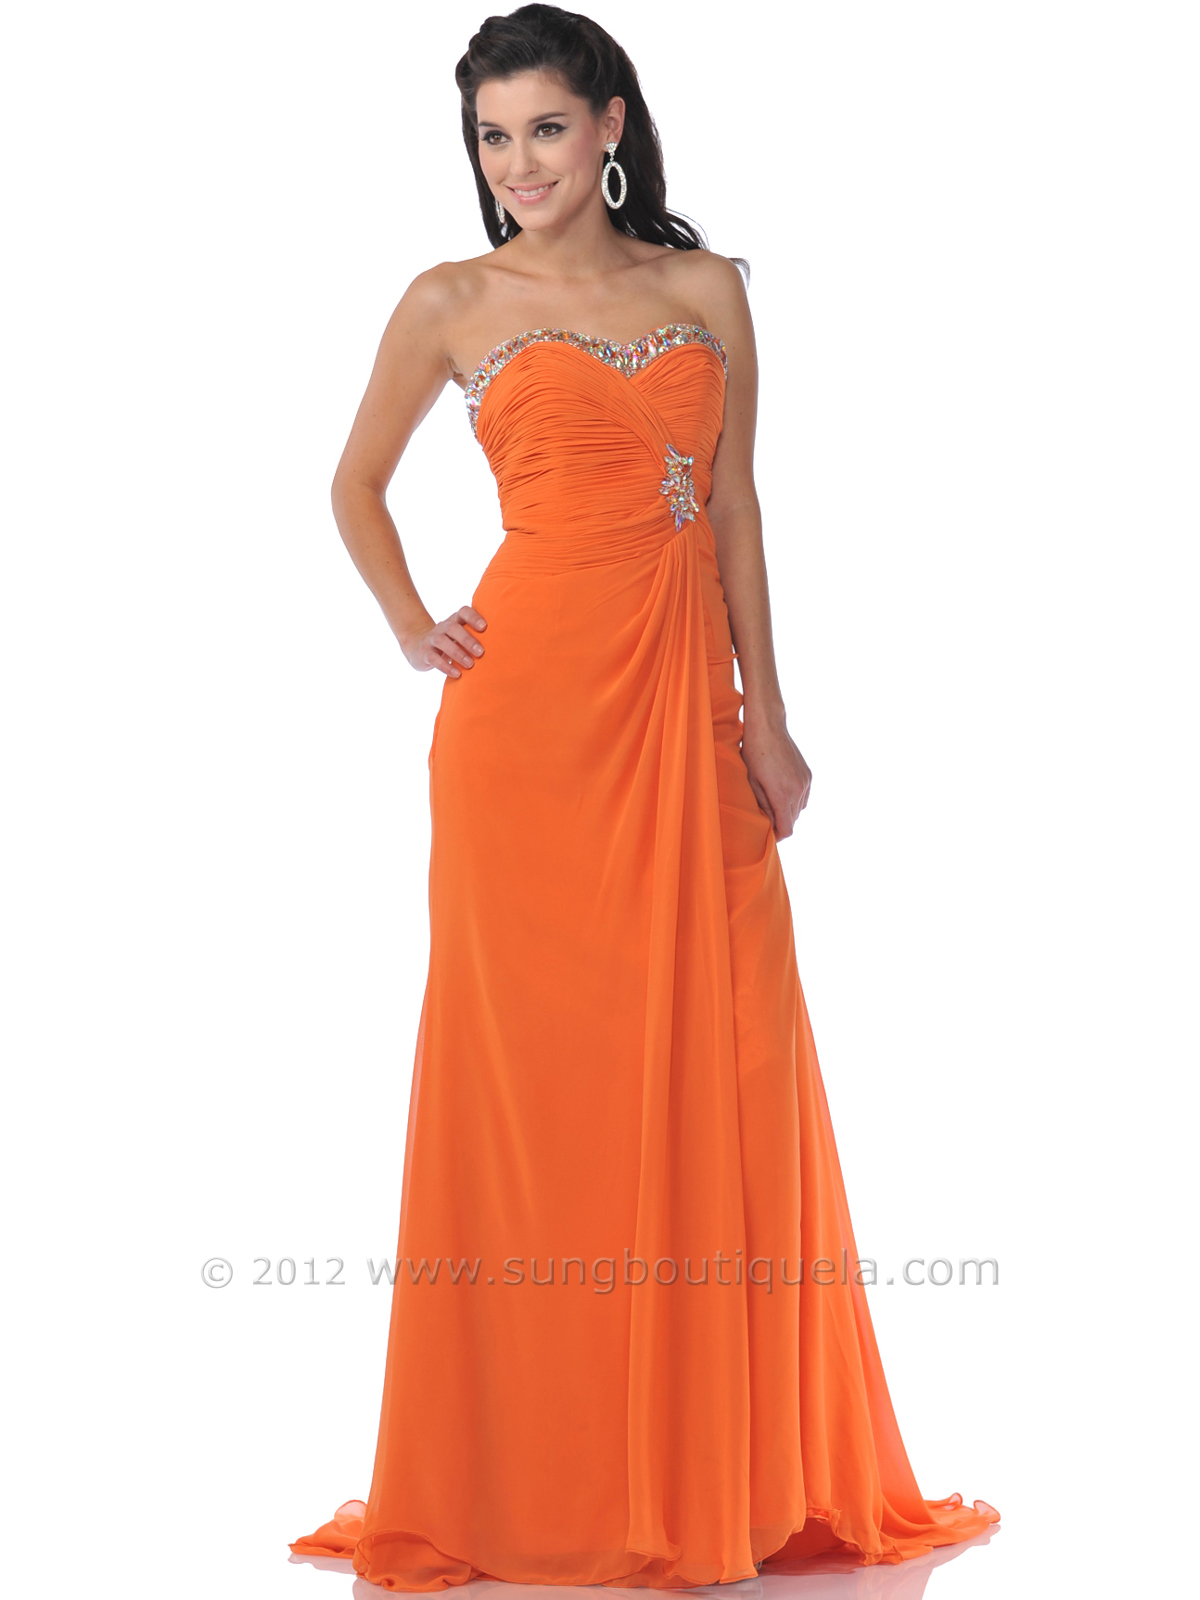 Orange Formal Dresses for Women | Dress images